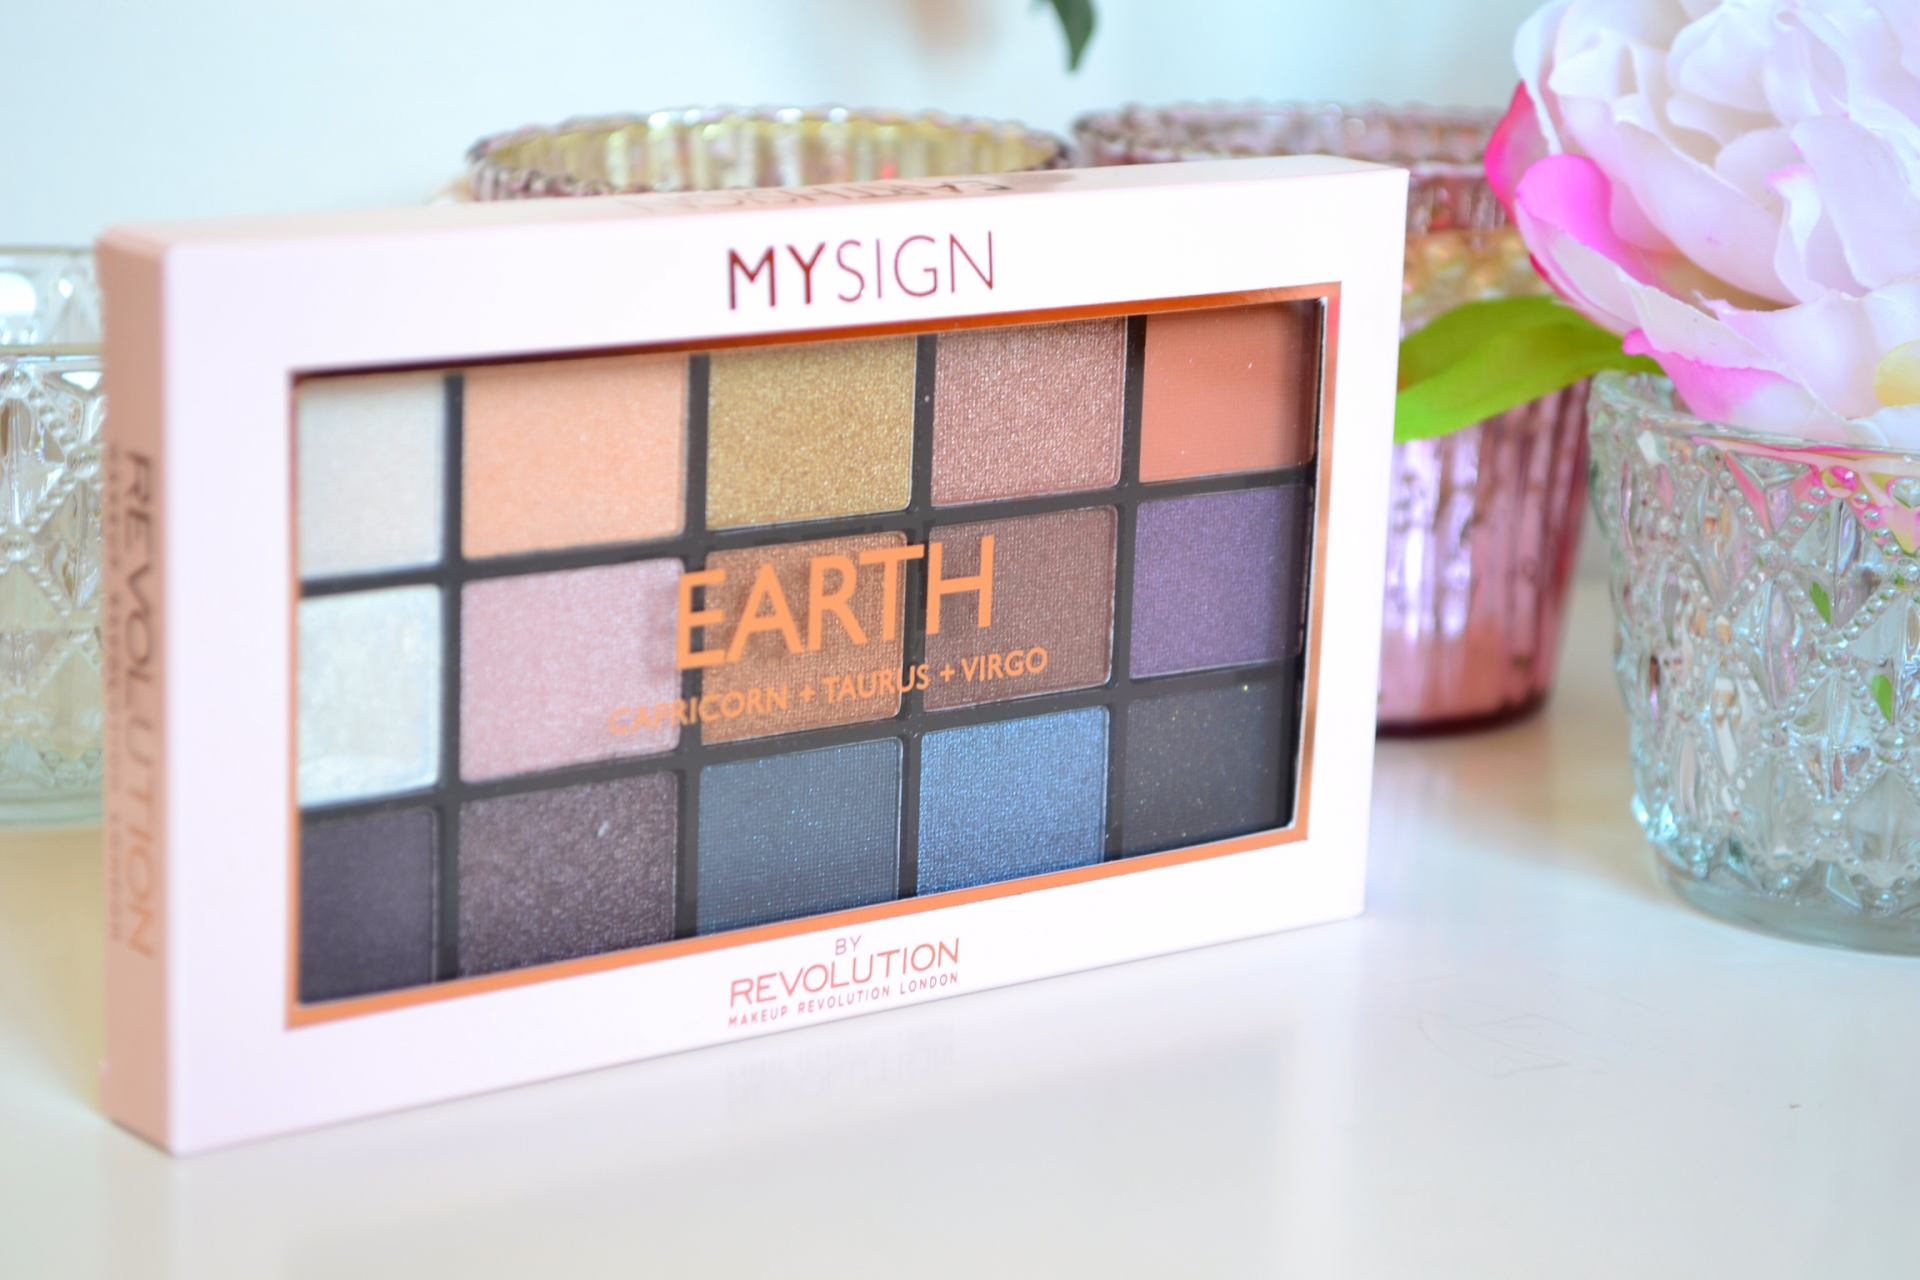 makeup-revolution-my-sign-palette-earth